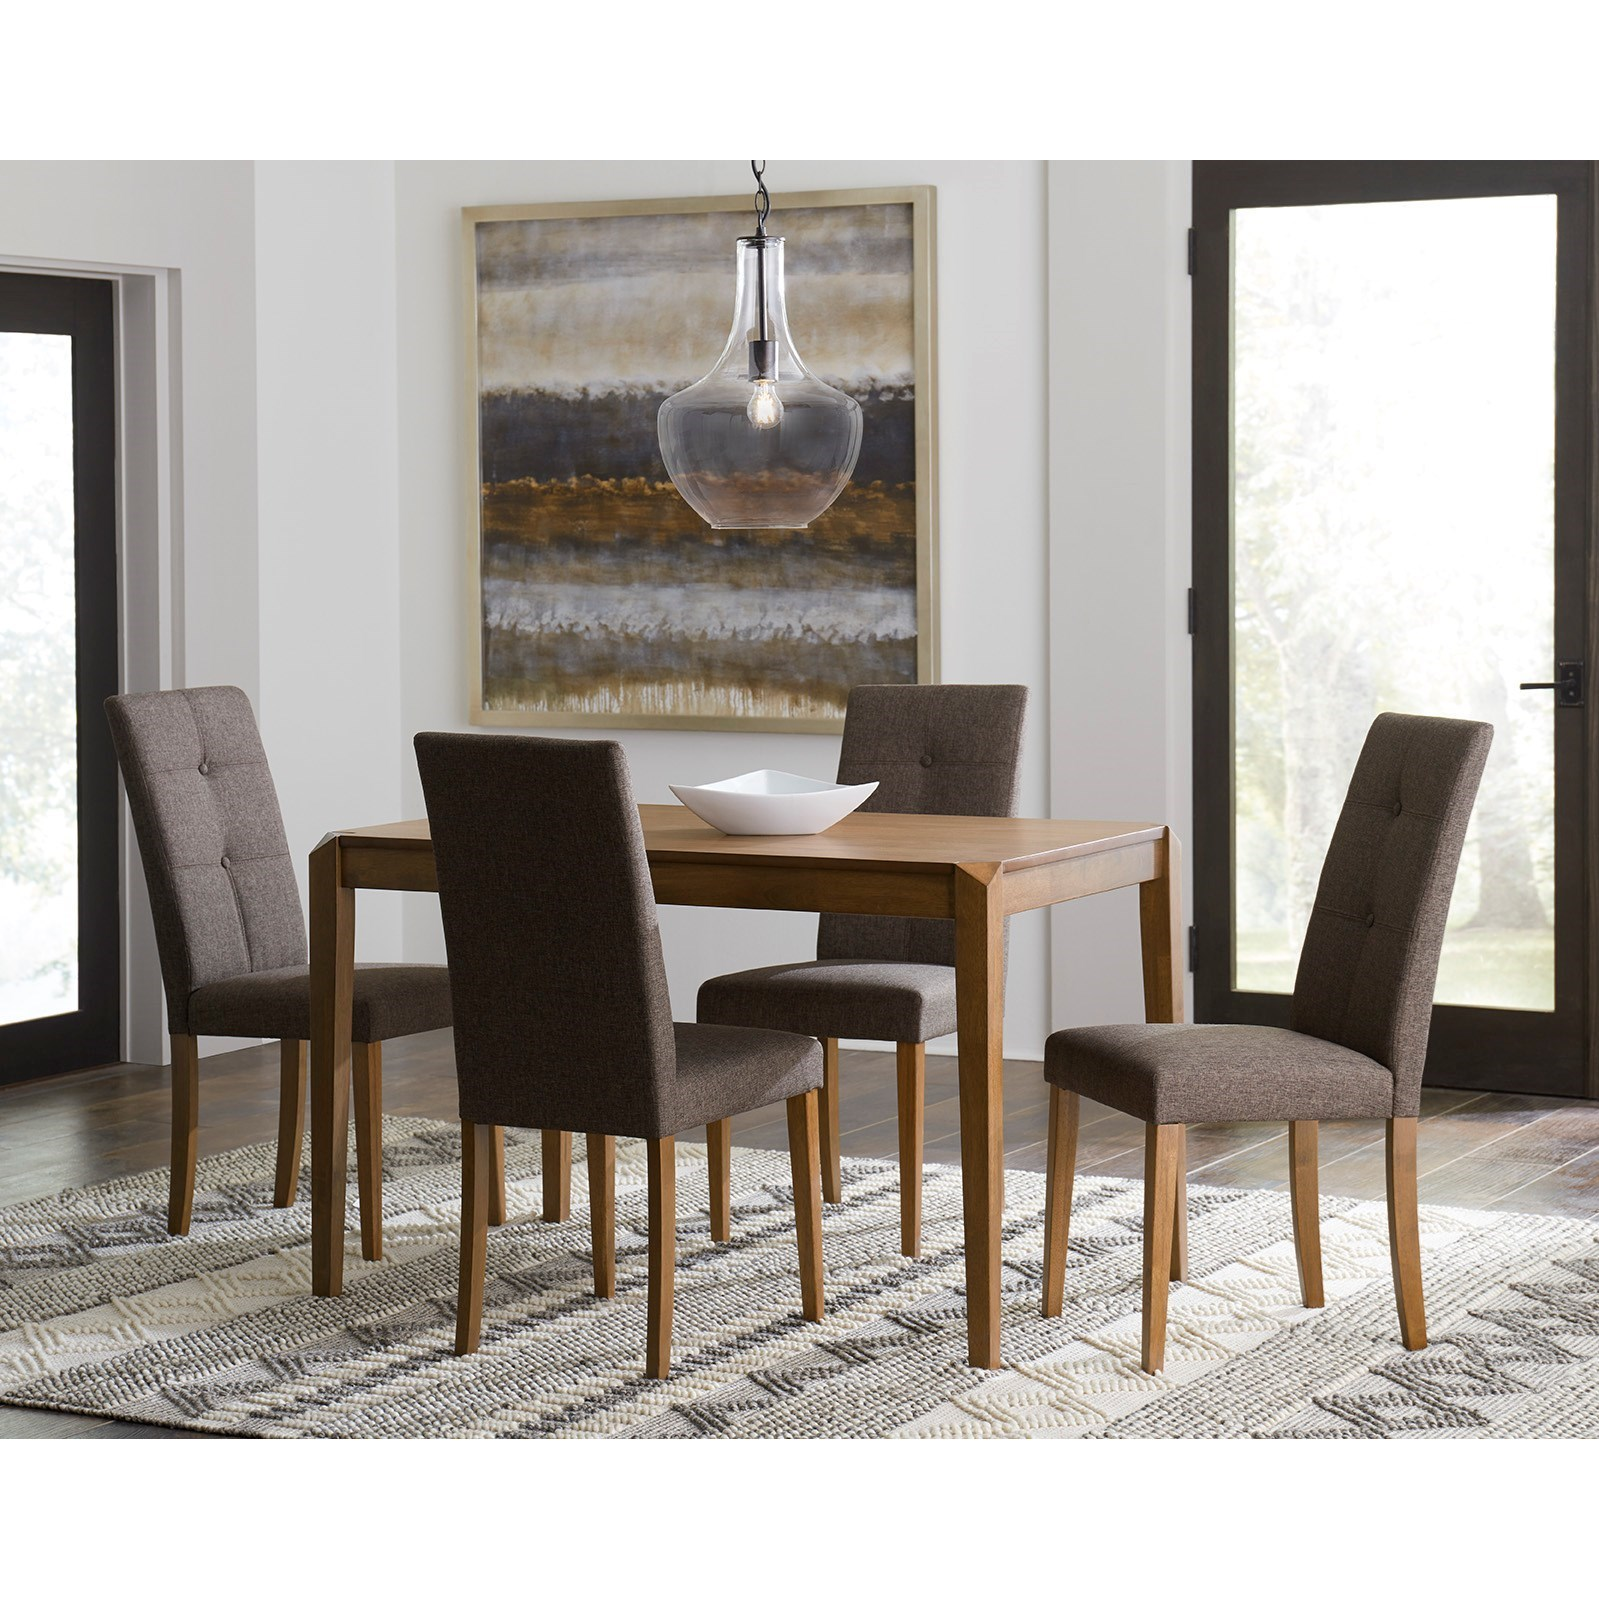 Arcade 5-Piece Table and Chair Set by Progressive Furniture at Catalog Outlet